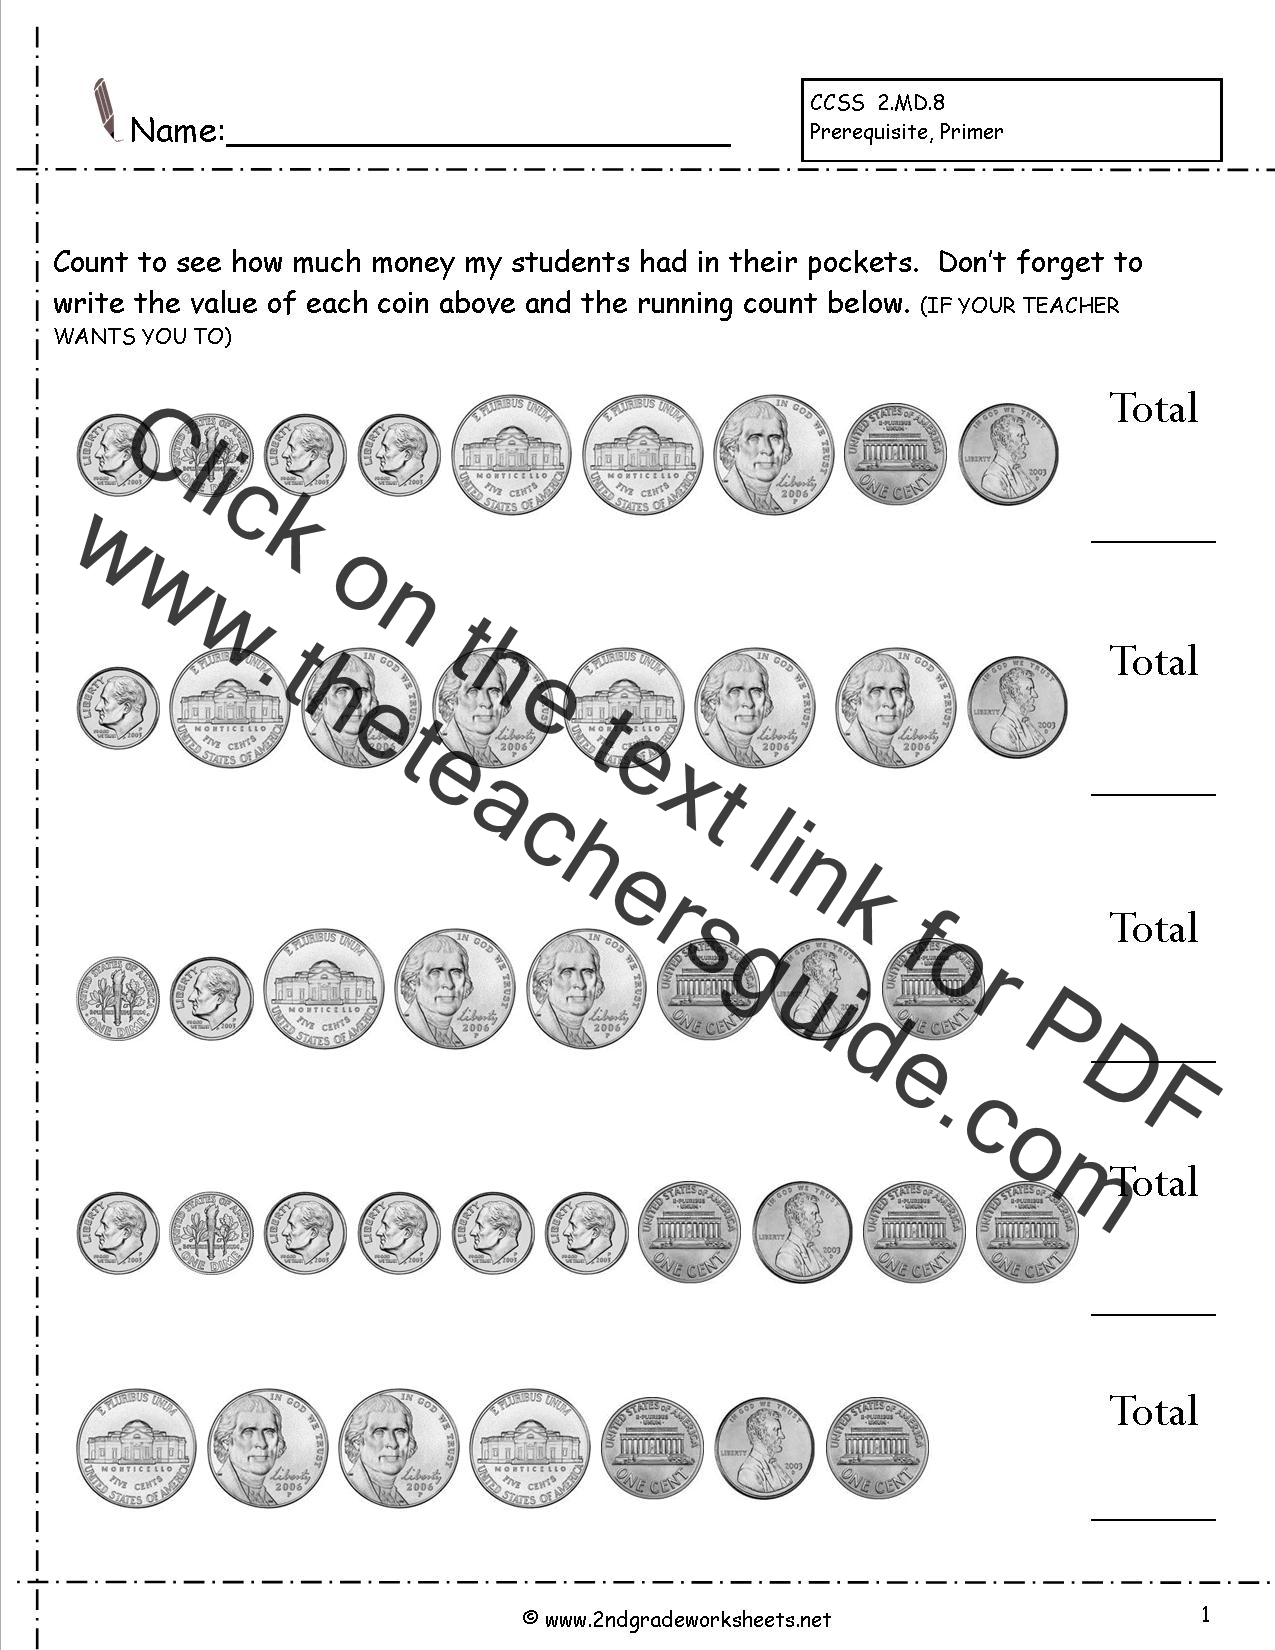 Free Math Worksheets and Printouts – Printable Math Worksheets for Second Grade